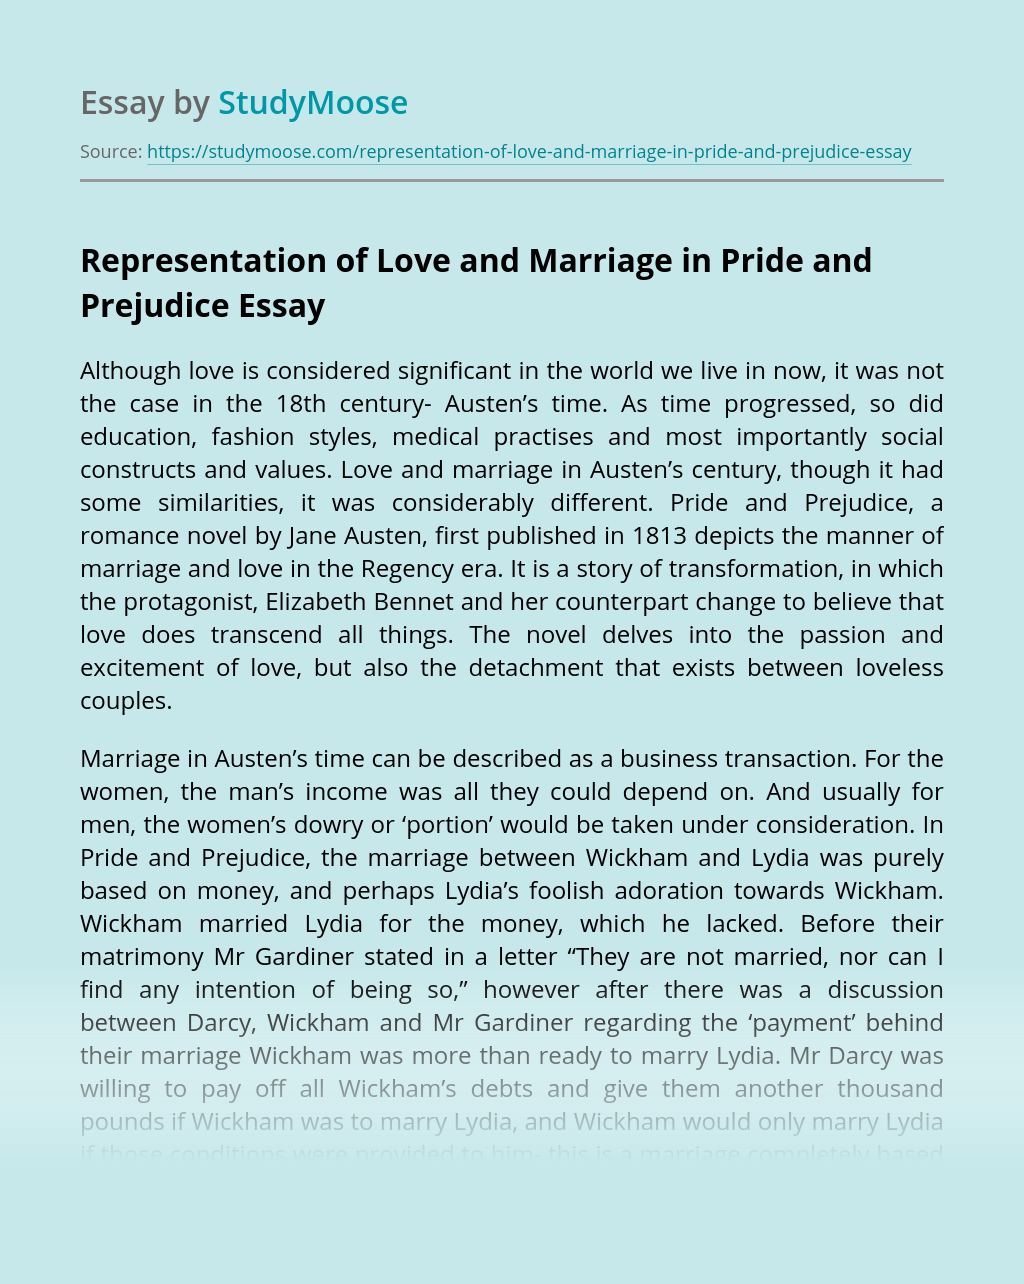 Representation of Love and Marriage in Pride and Prejudice